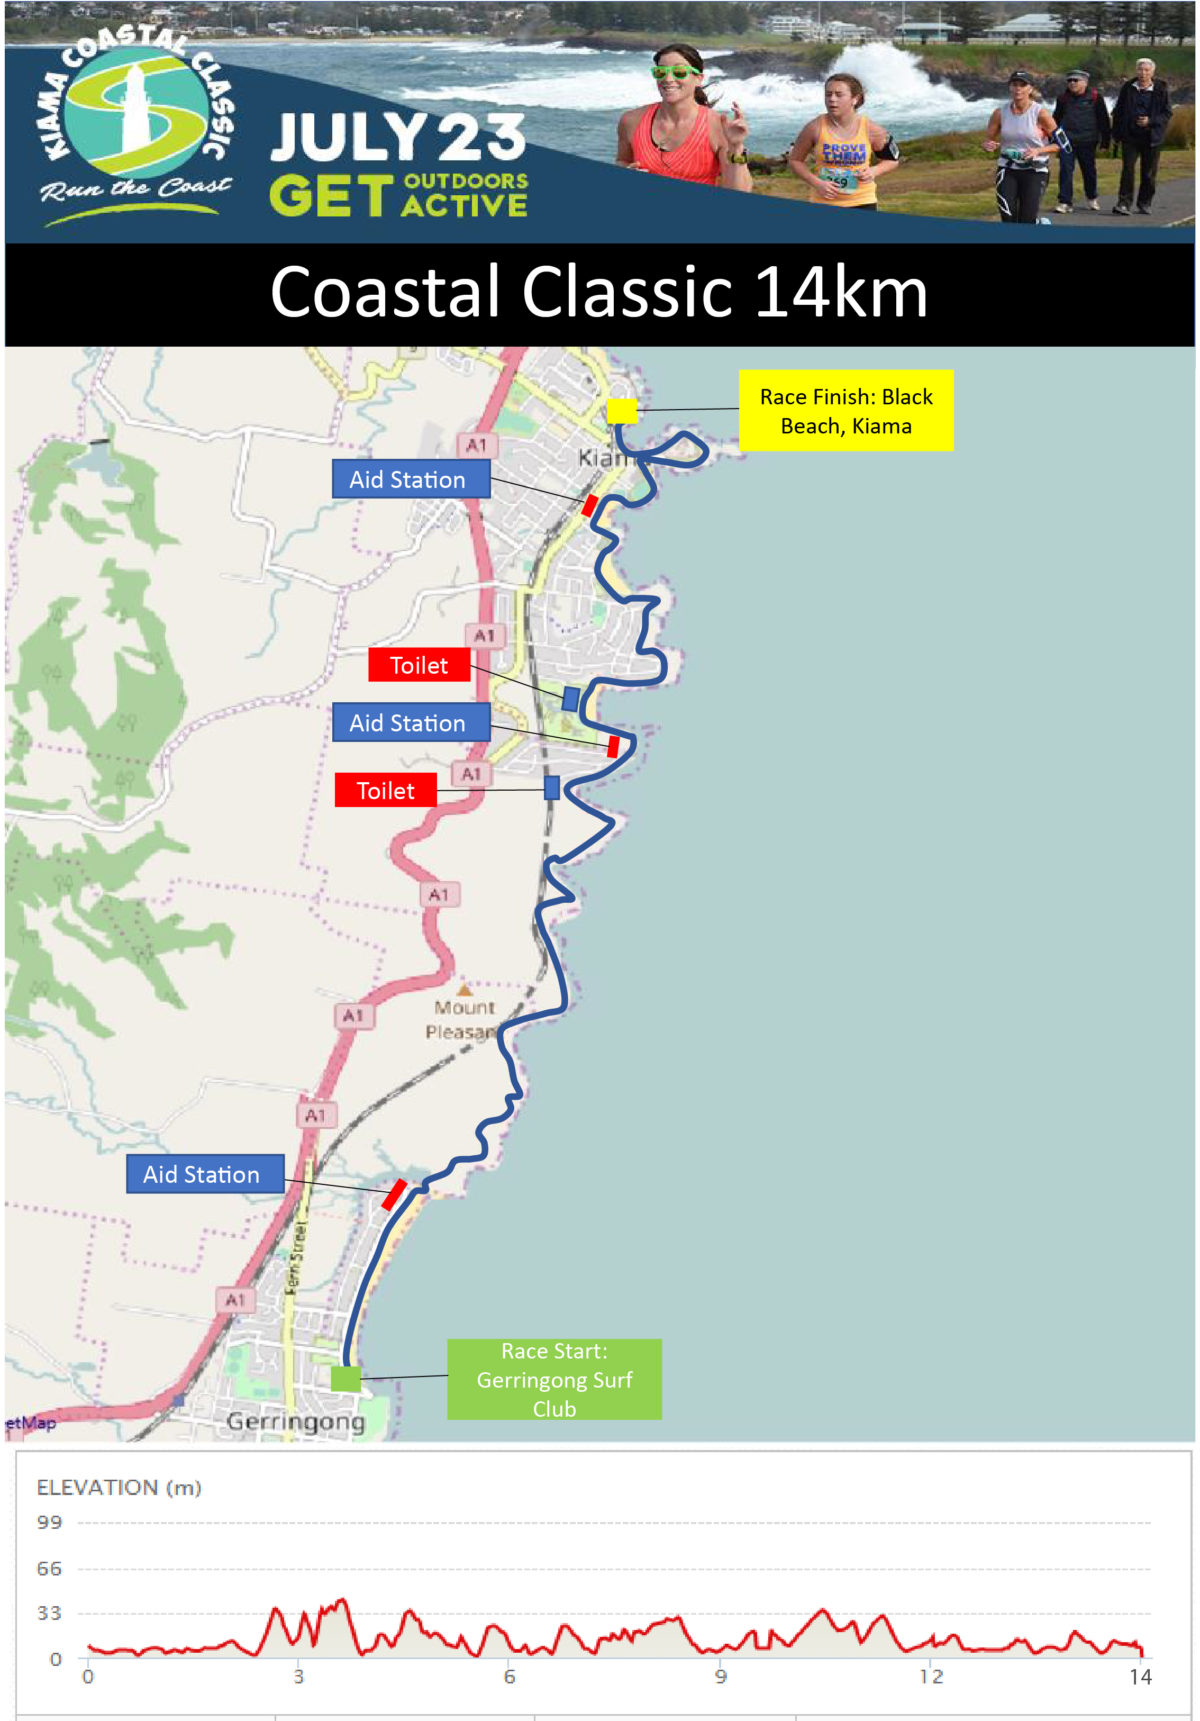 https://www.eliteenergy.com.au/wp-content/uploads/2016/04/Kiama-Coastal-Classic-14km-2017-1200x1721.jpg